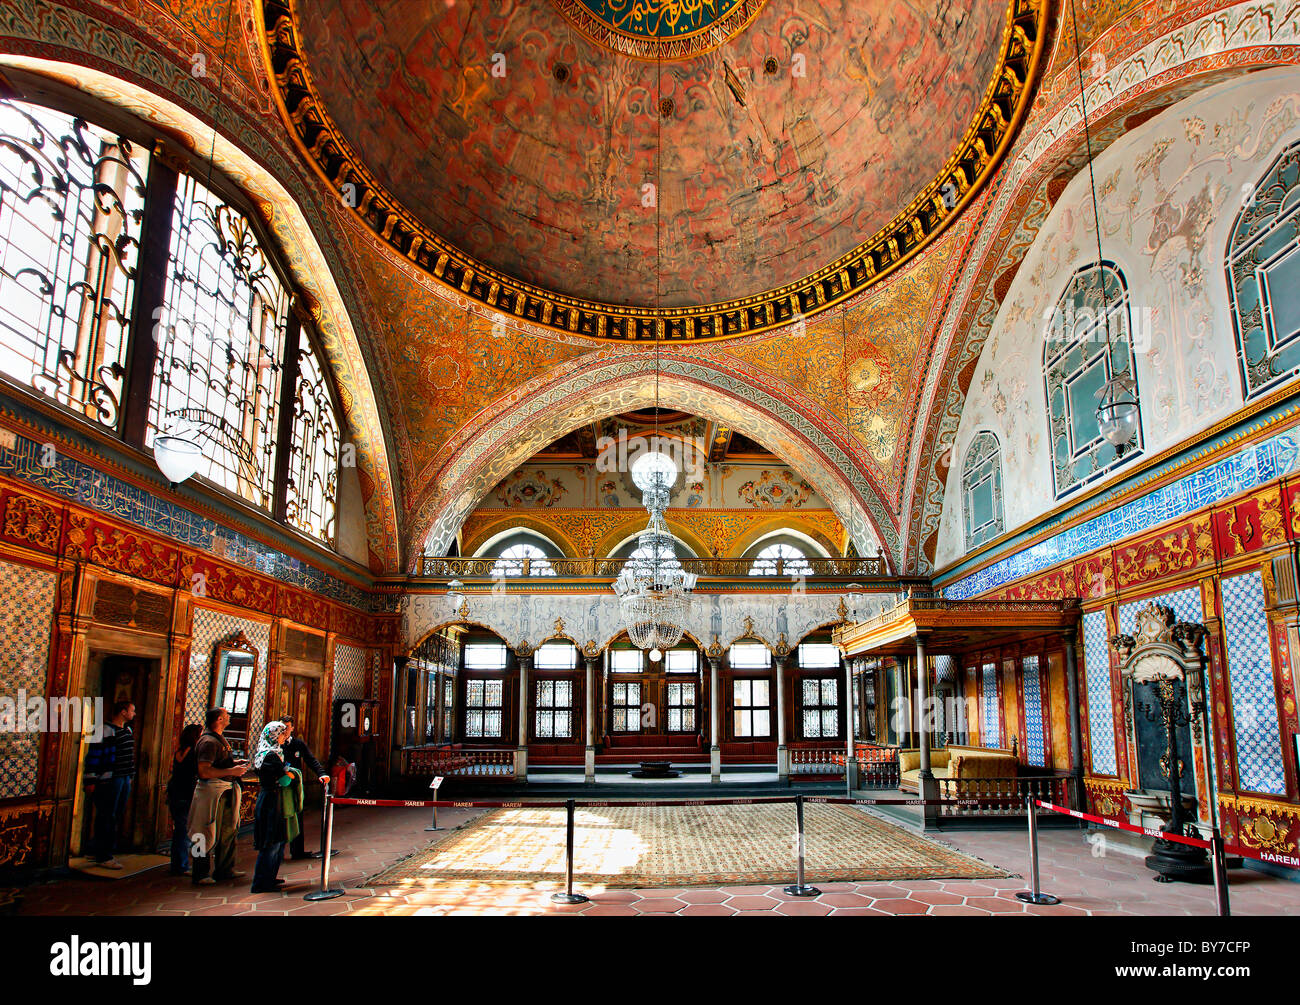 The Imperial (Sultan's) hall in the Harem of Topkapi ...